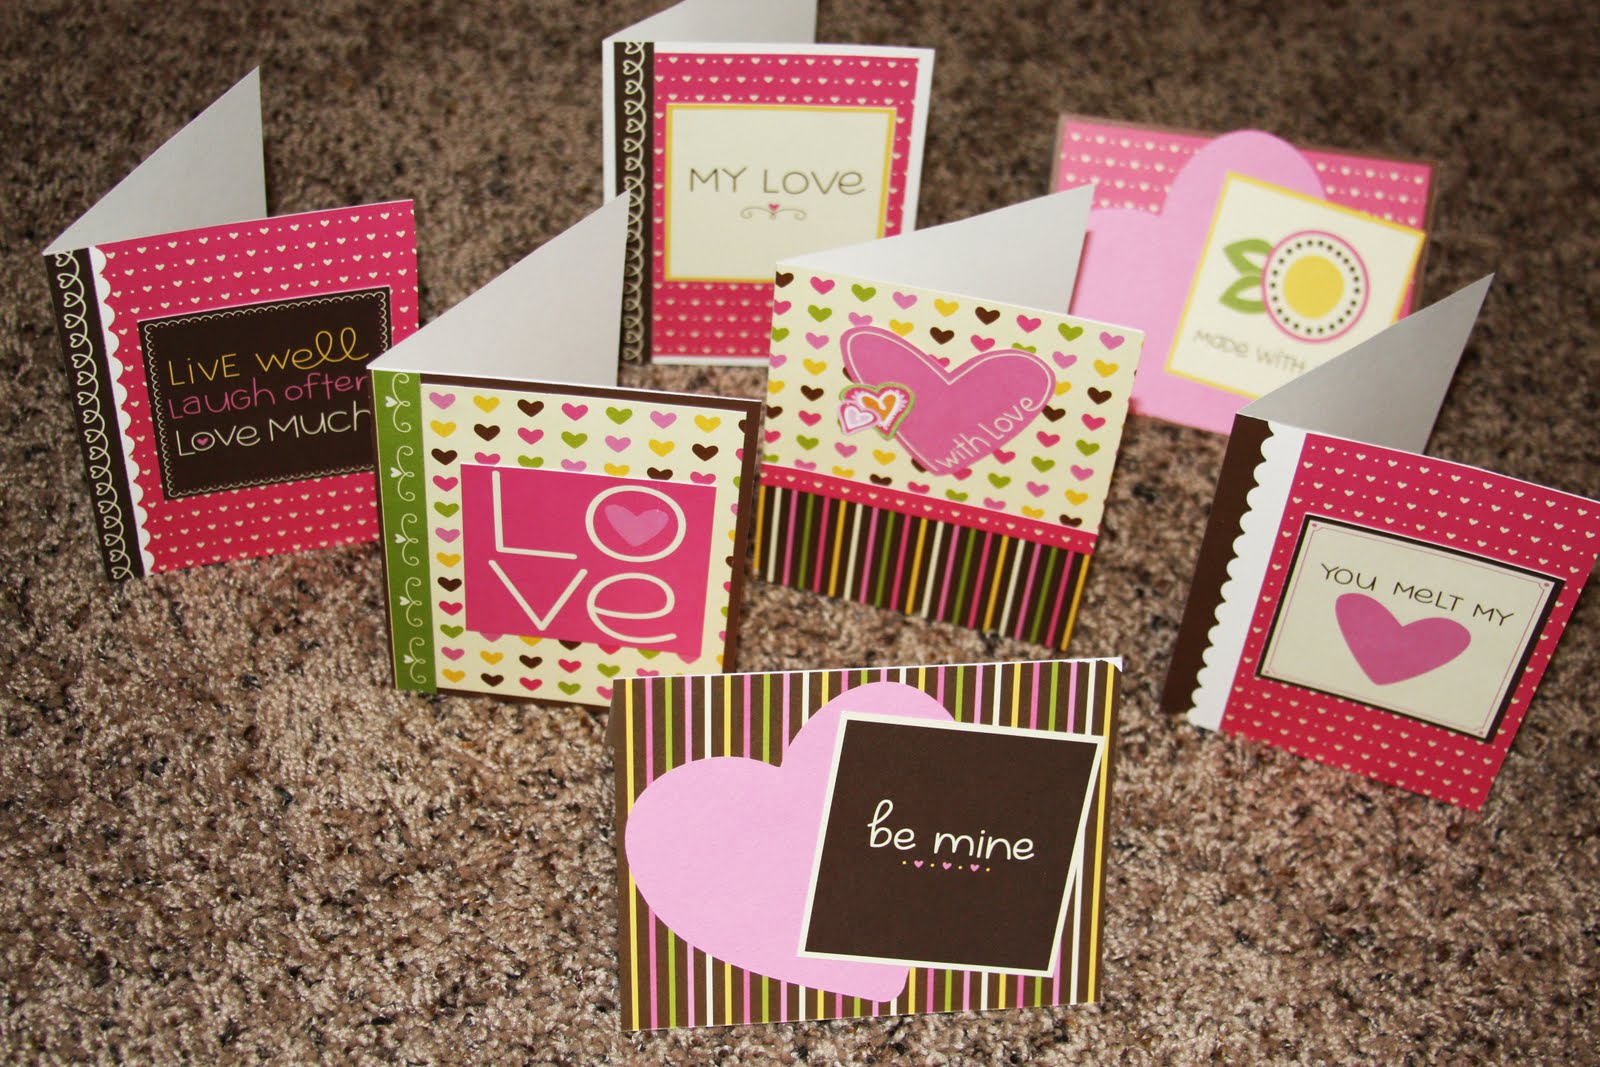 Valentines+Day+cards+to+my+love+(9)